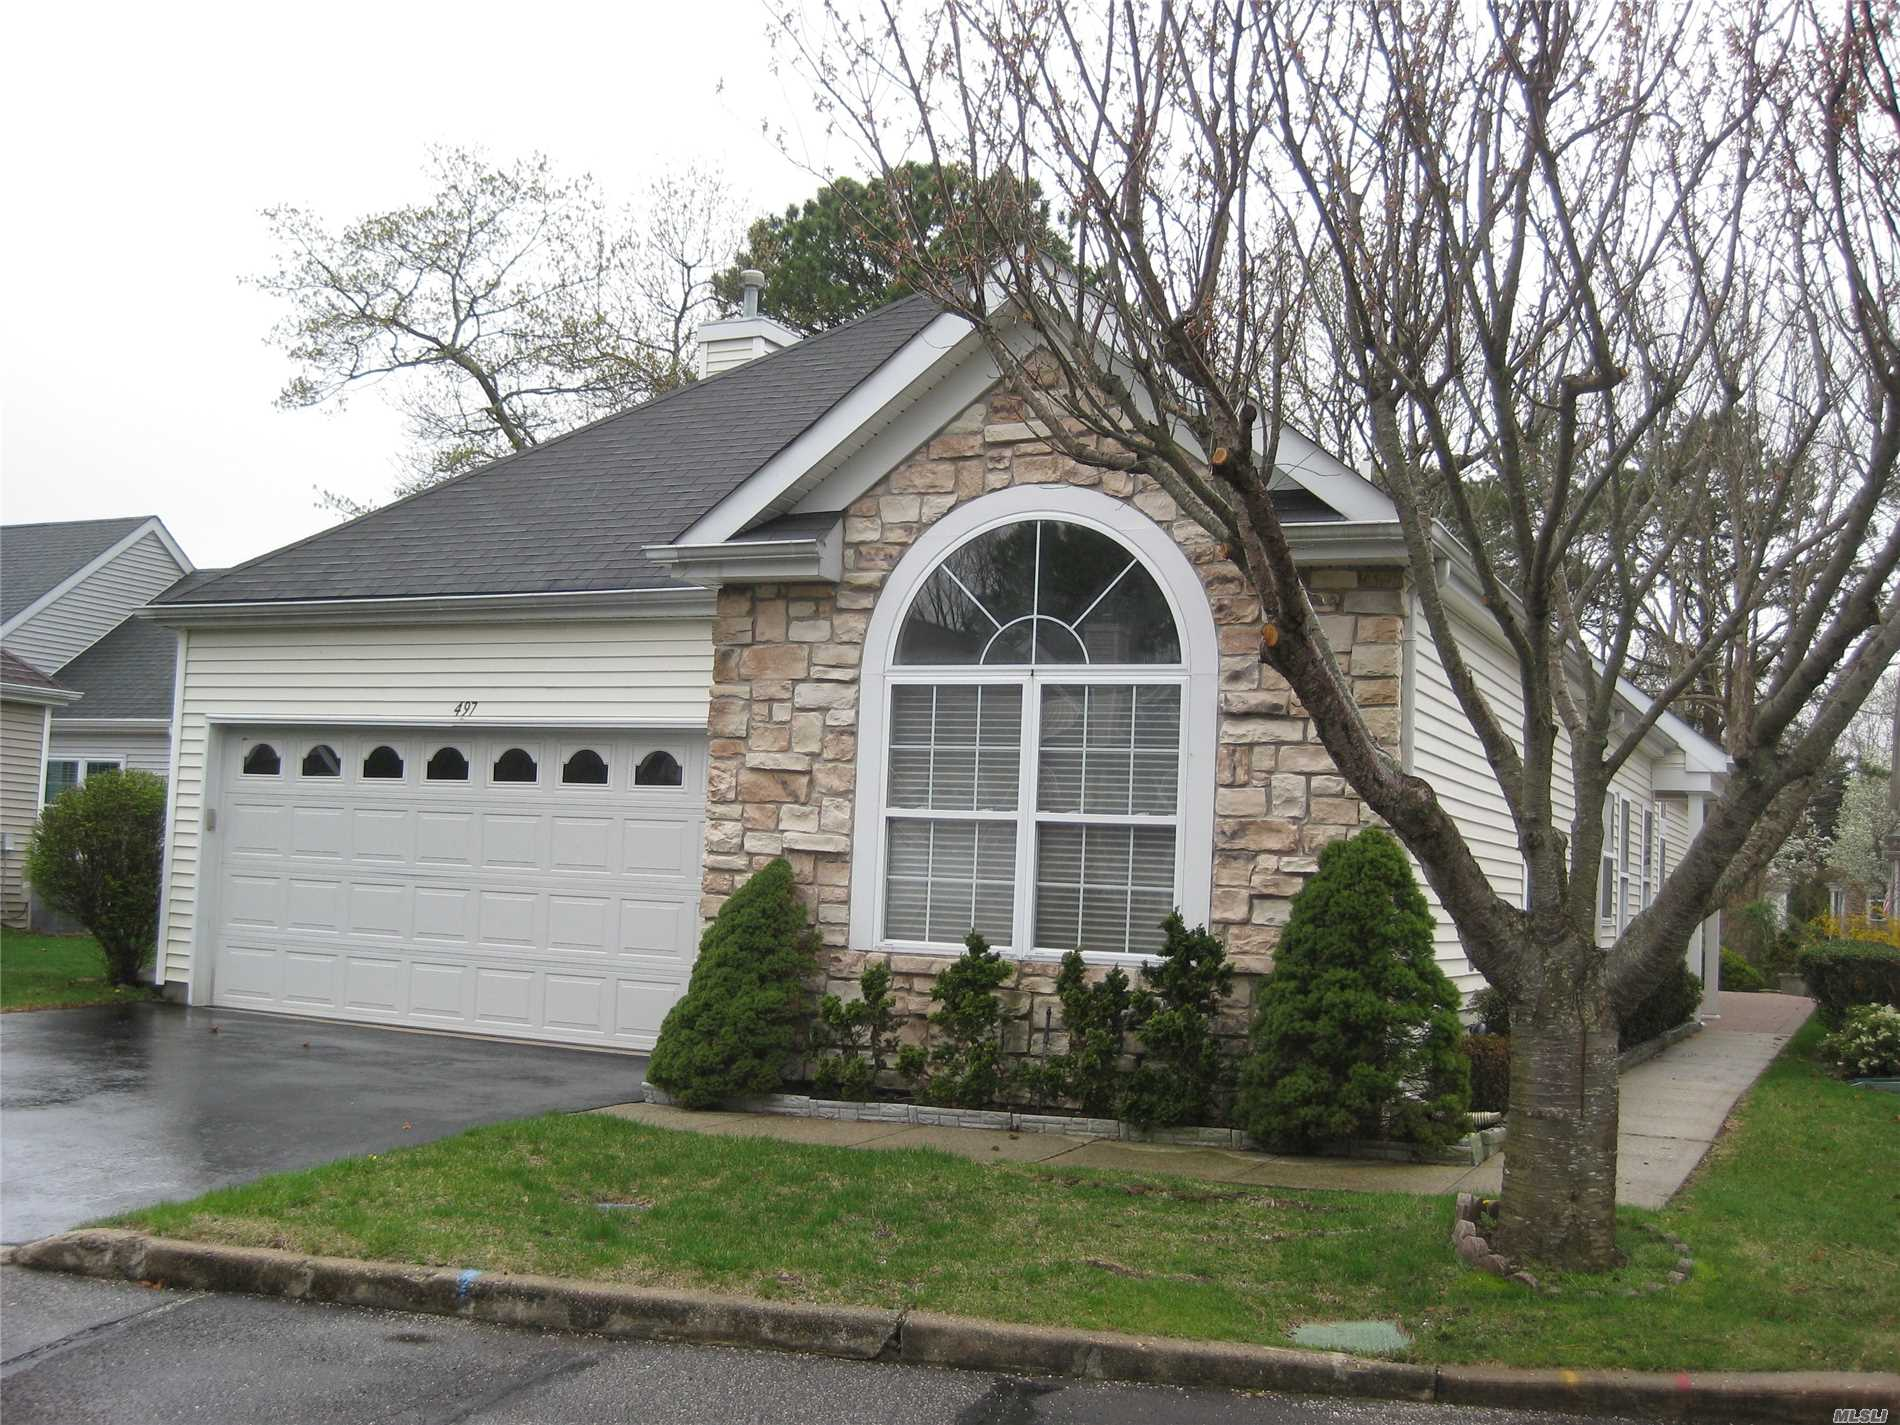 Well maintained and desirable Maidstone Model, 2 car garage, LR, DR, Den, EIK, MBR suite with whirlpool tub, laundry rm, large patio w/ elec awning, open floorplan, Clubhouse, pool and many other amenities